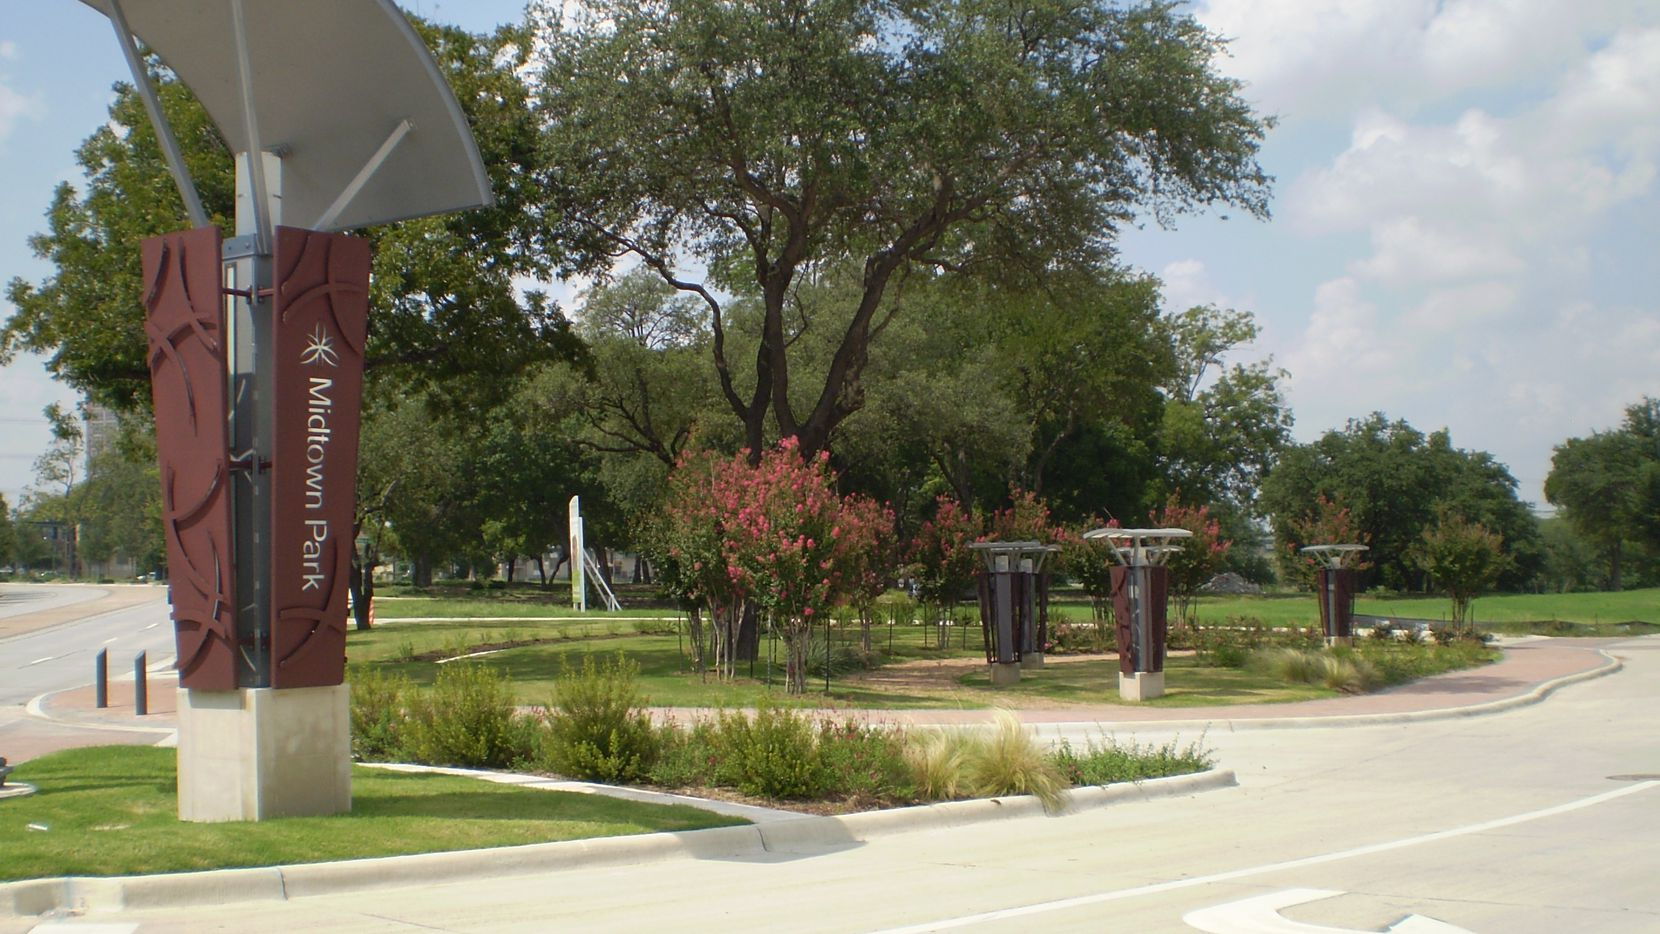 Developers have built thousands of new homes and apartments in the Midtown Park area on Meadow Road in North Dallas .